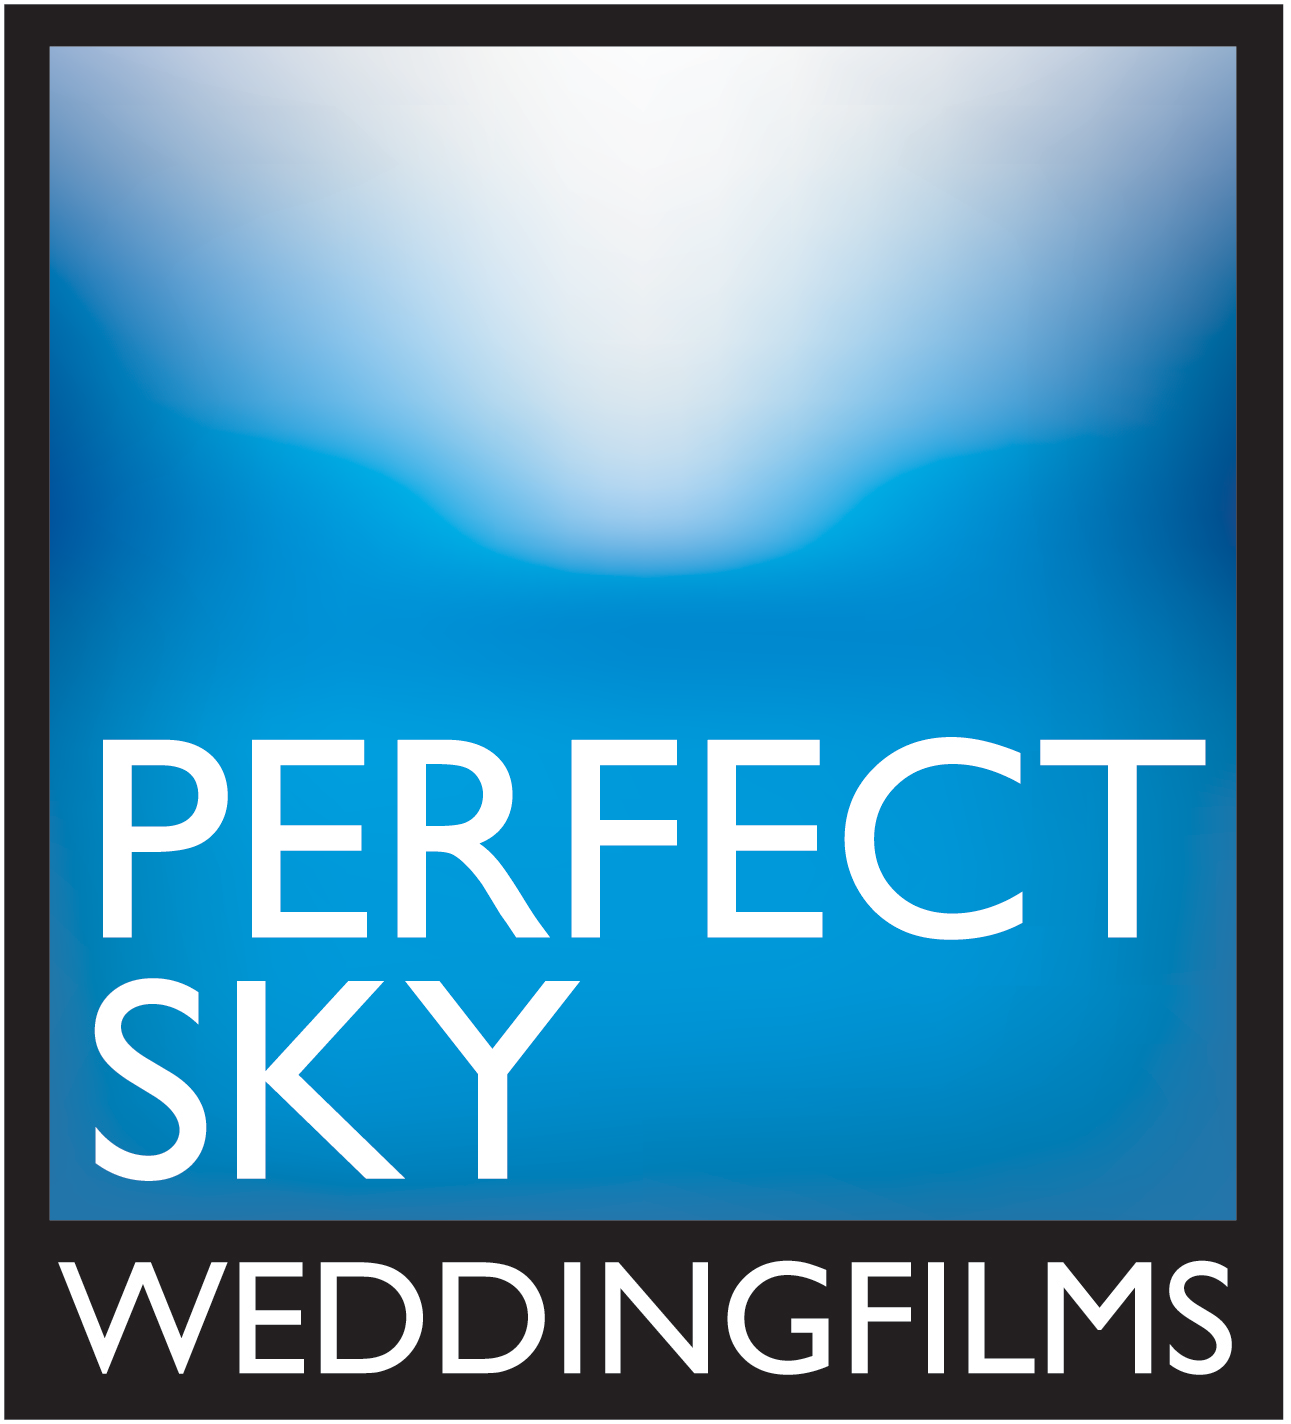 Perfect Sky Wedding Films - Orlando and Destination Wedding Video